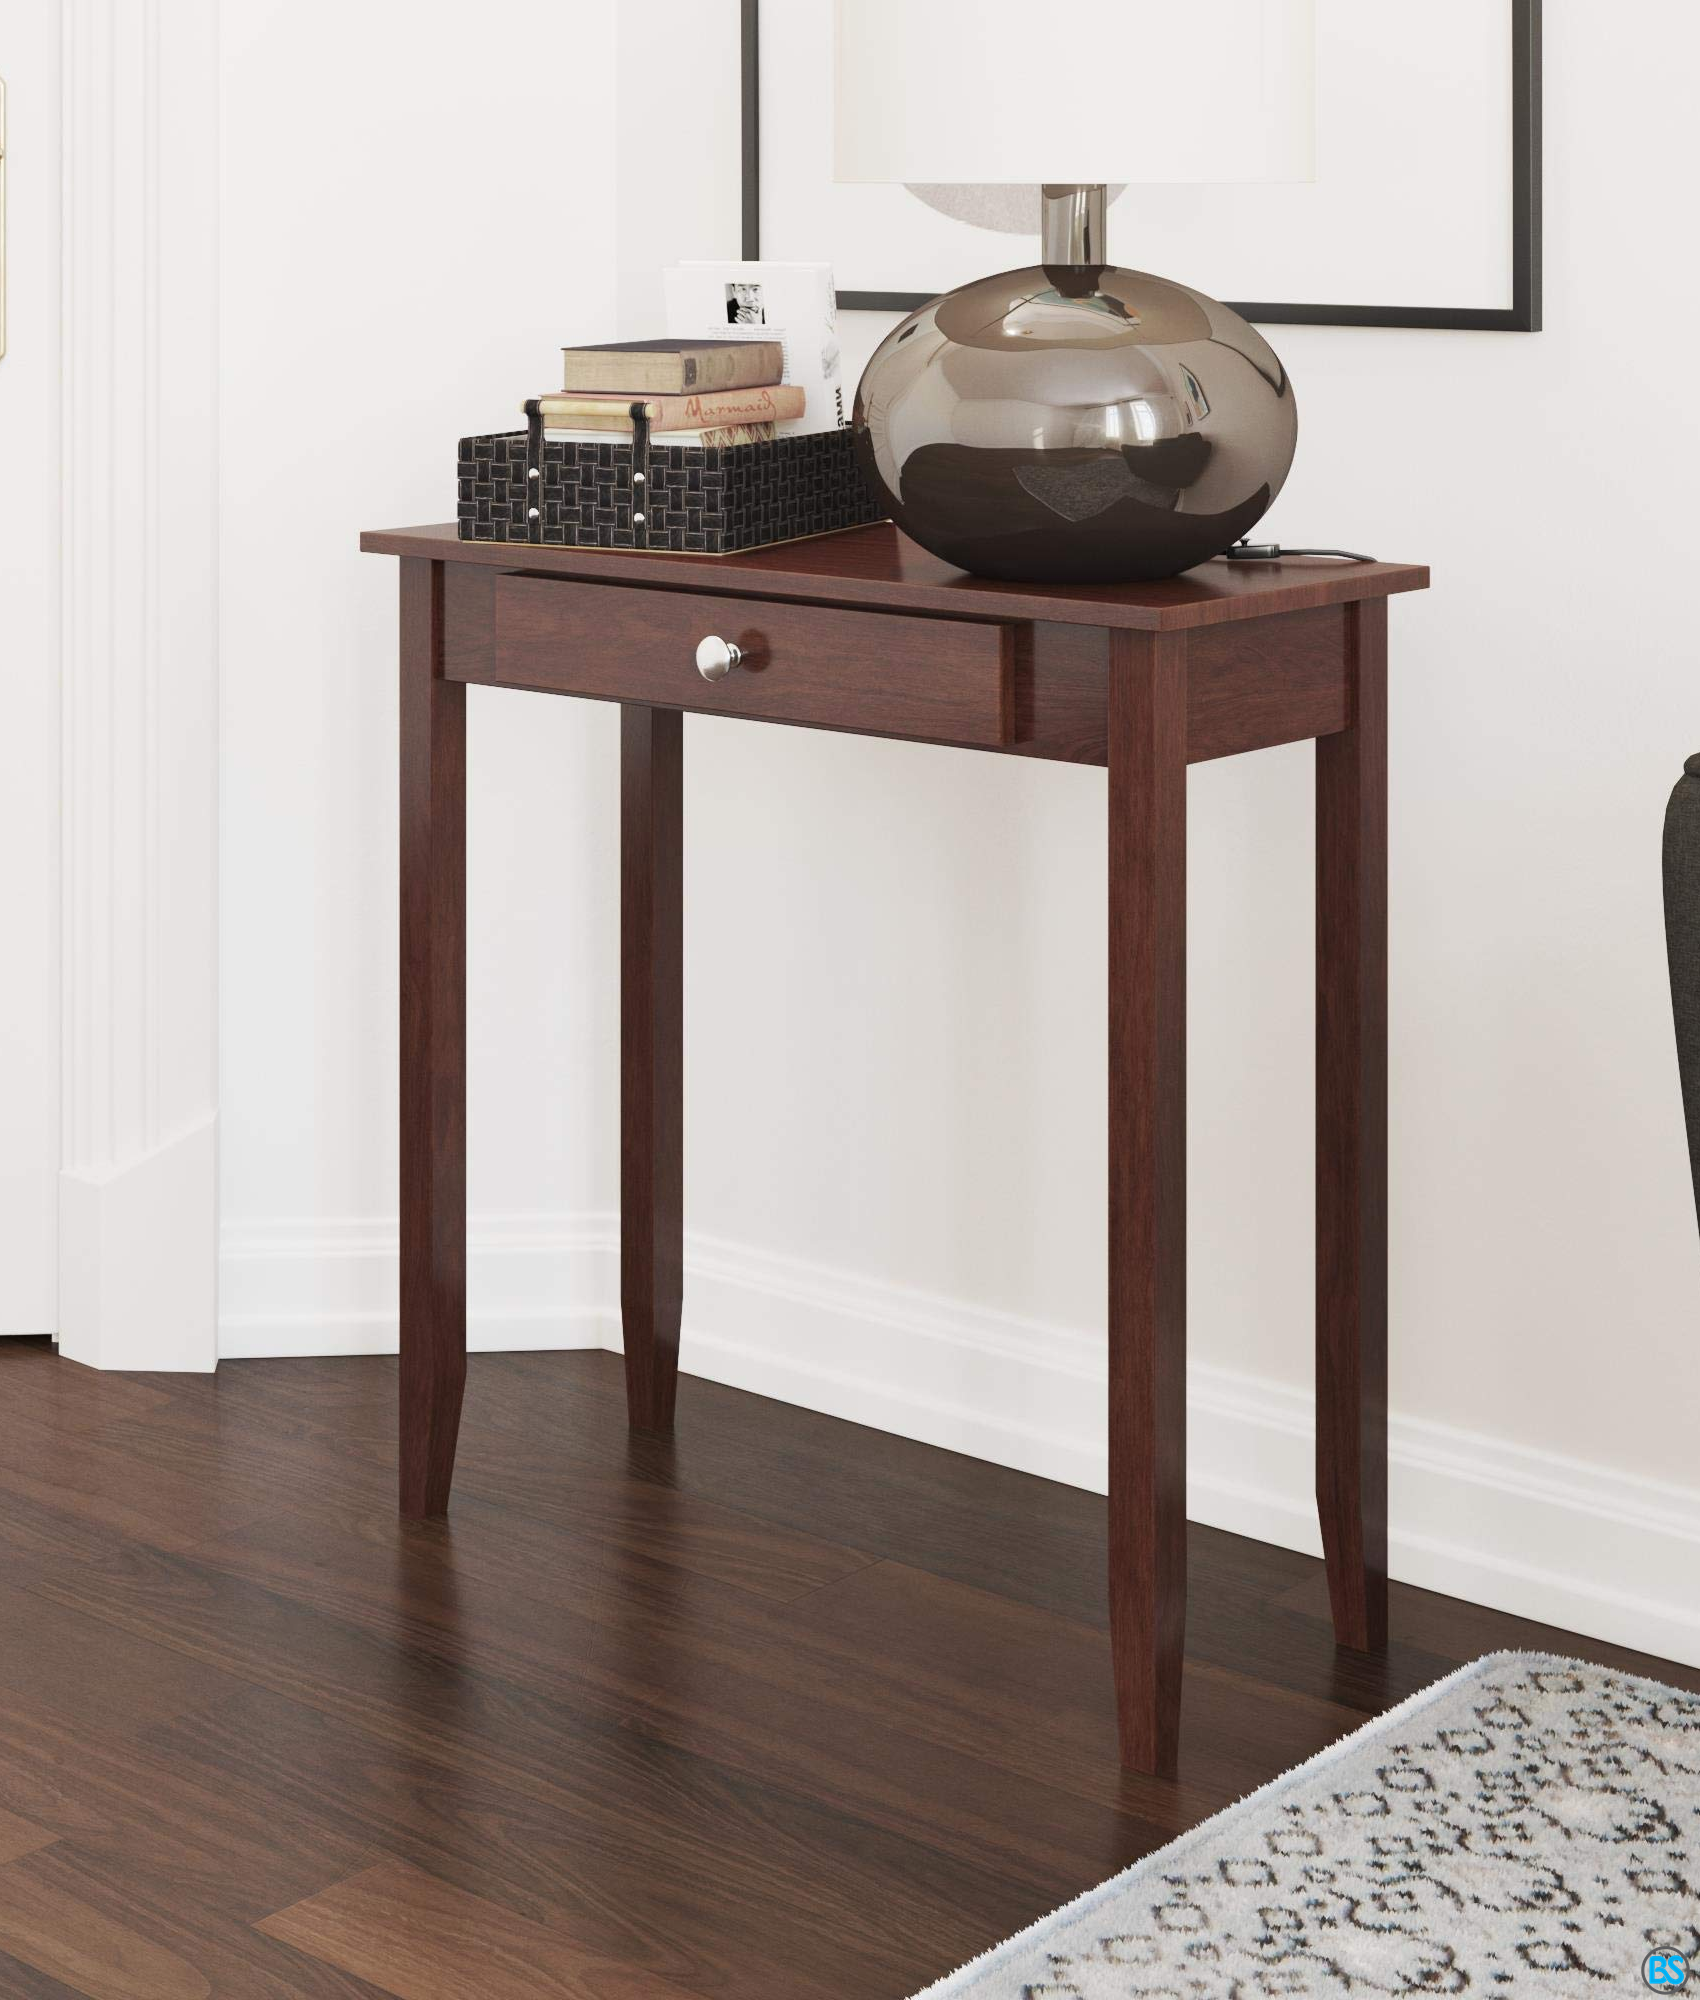 Sofa Dhp Rosewood Tall Coffee Table In 2020 Tall Coffee Table Console Table Living Room Tall End Tables